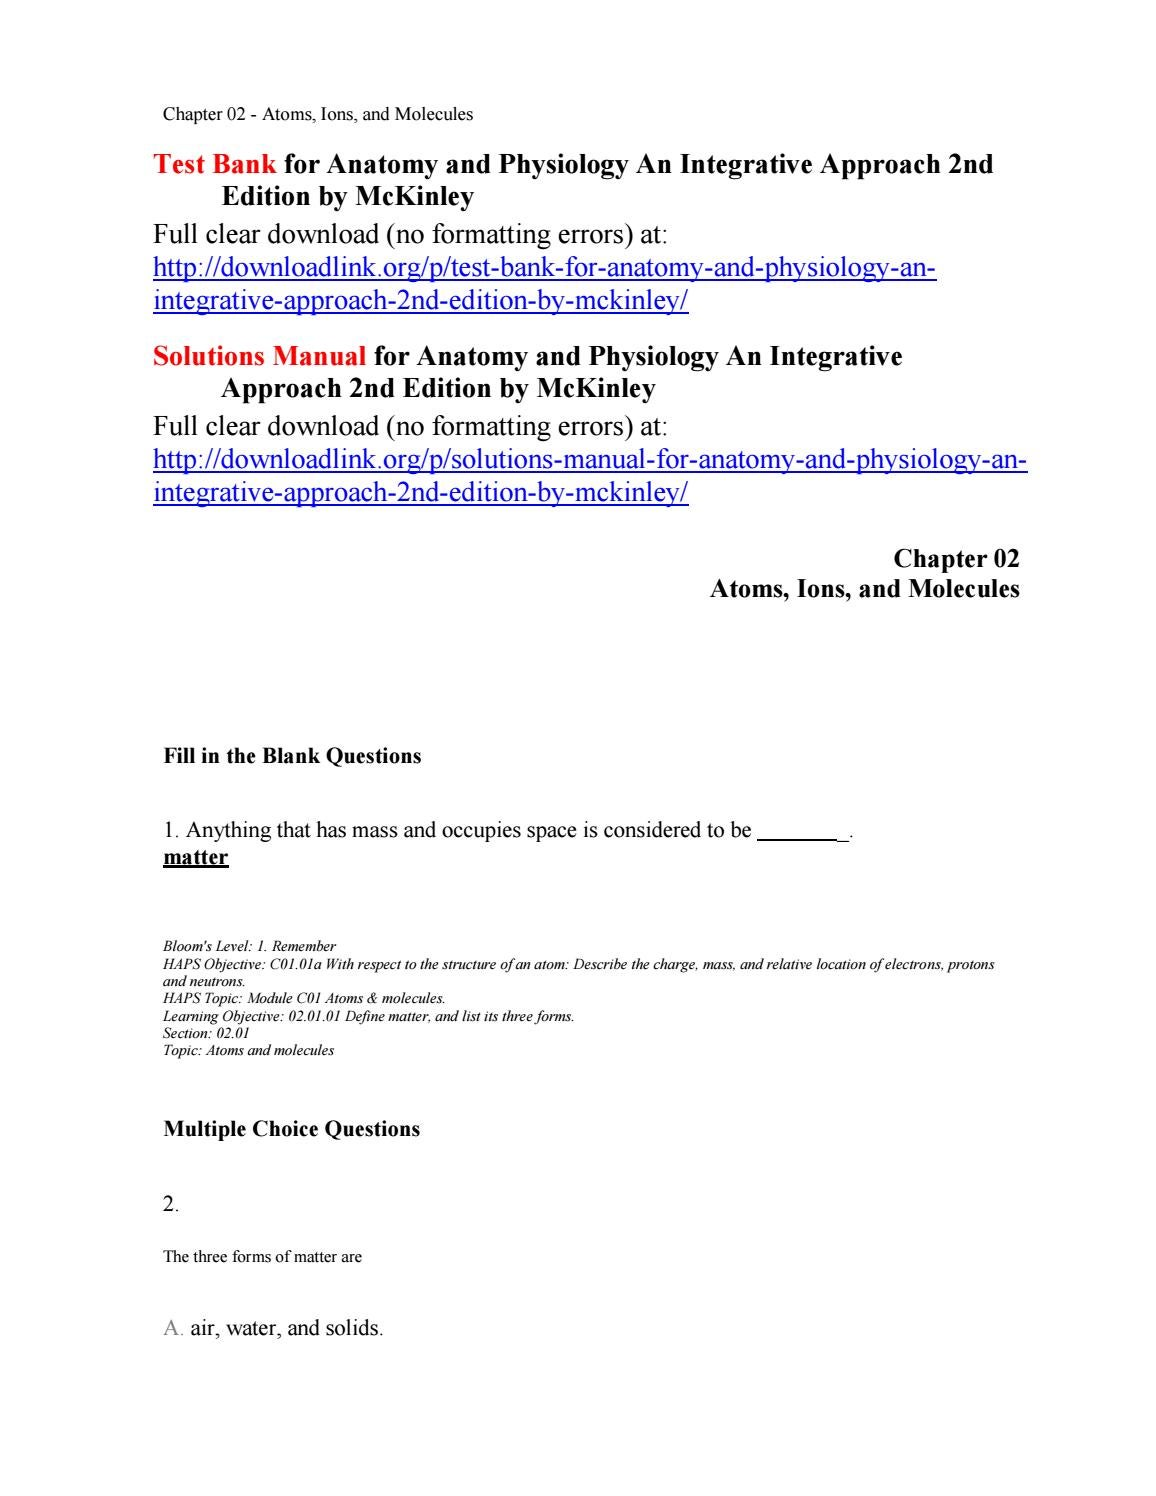 Test Bank for Anatomy and Physiology An Integrative Approach 2nd